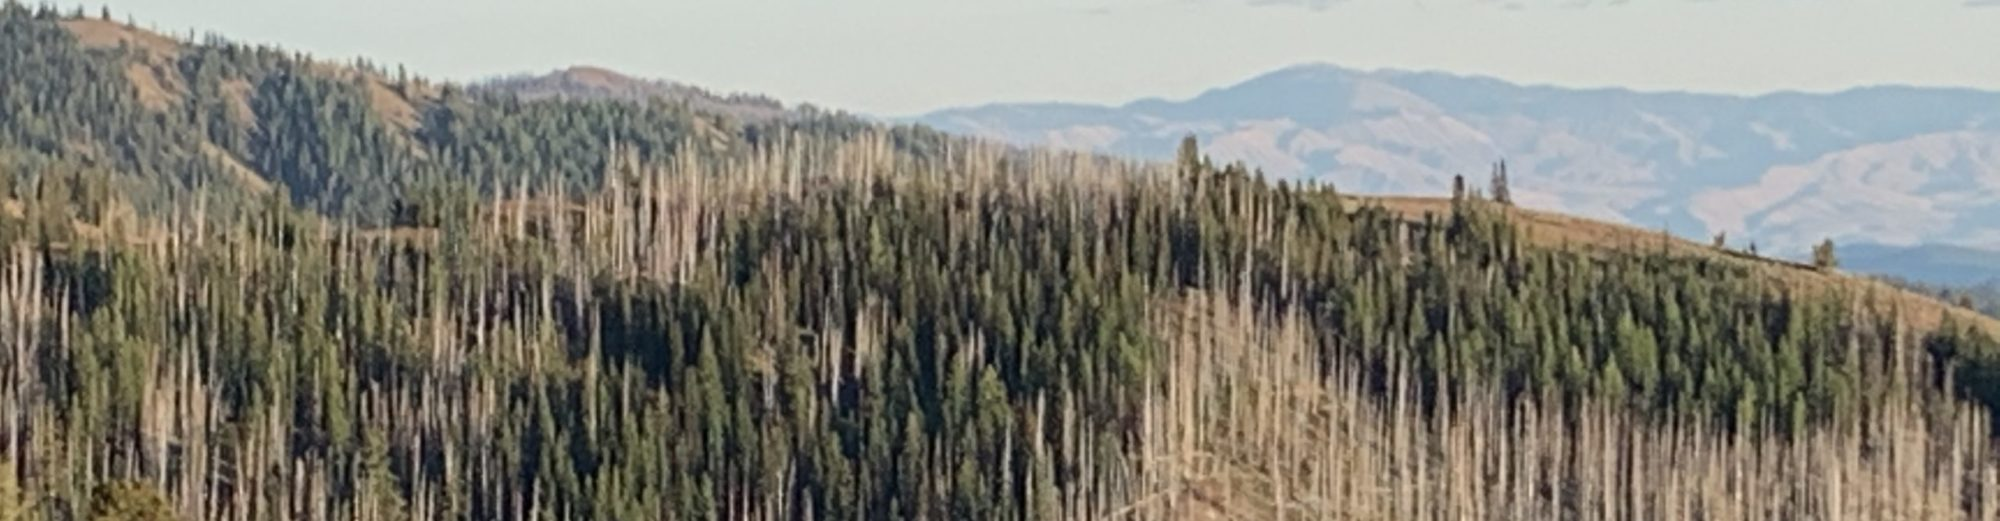 Reducing Wildfire Risk in Northeastern Oregon